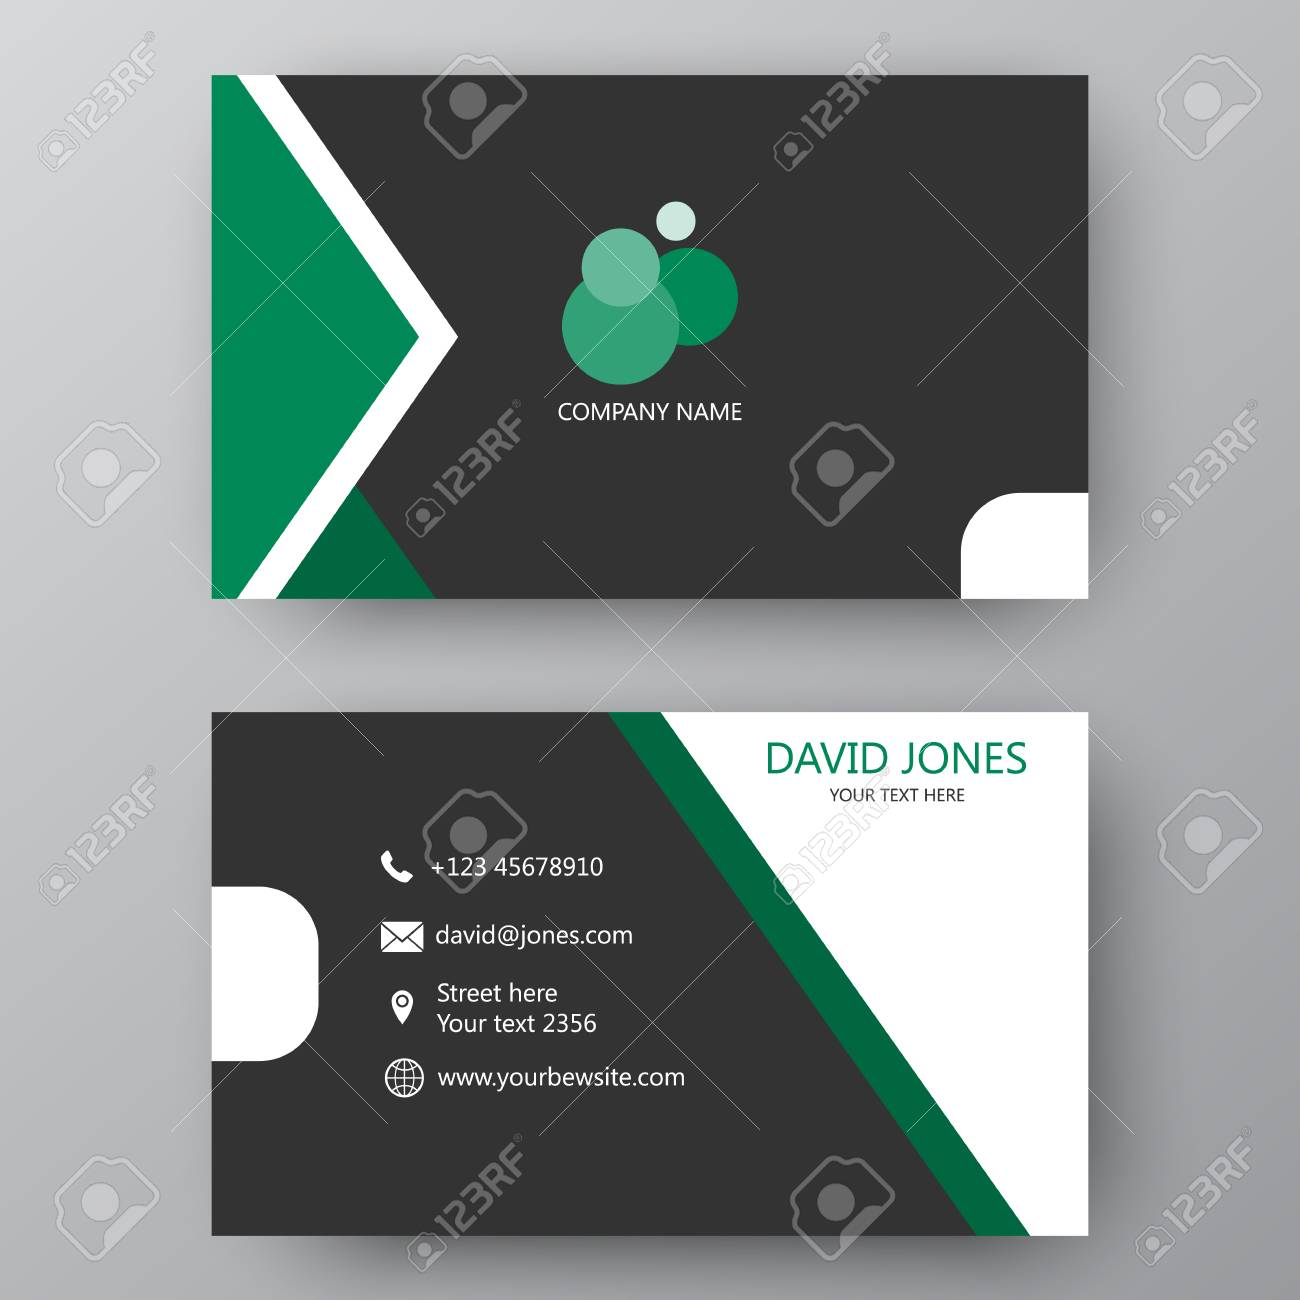 Vector business card template visiting card for business and vector vector business card template visiting card for business and personal use modern presentation card with company logo vector illustration design flashek